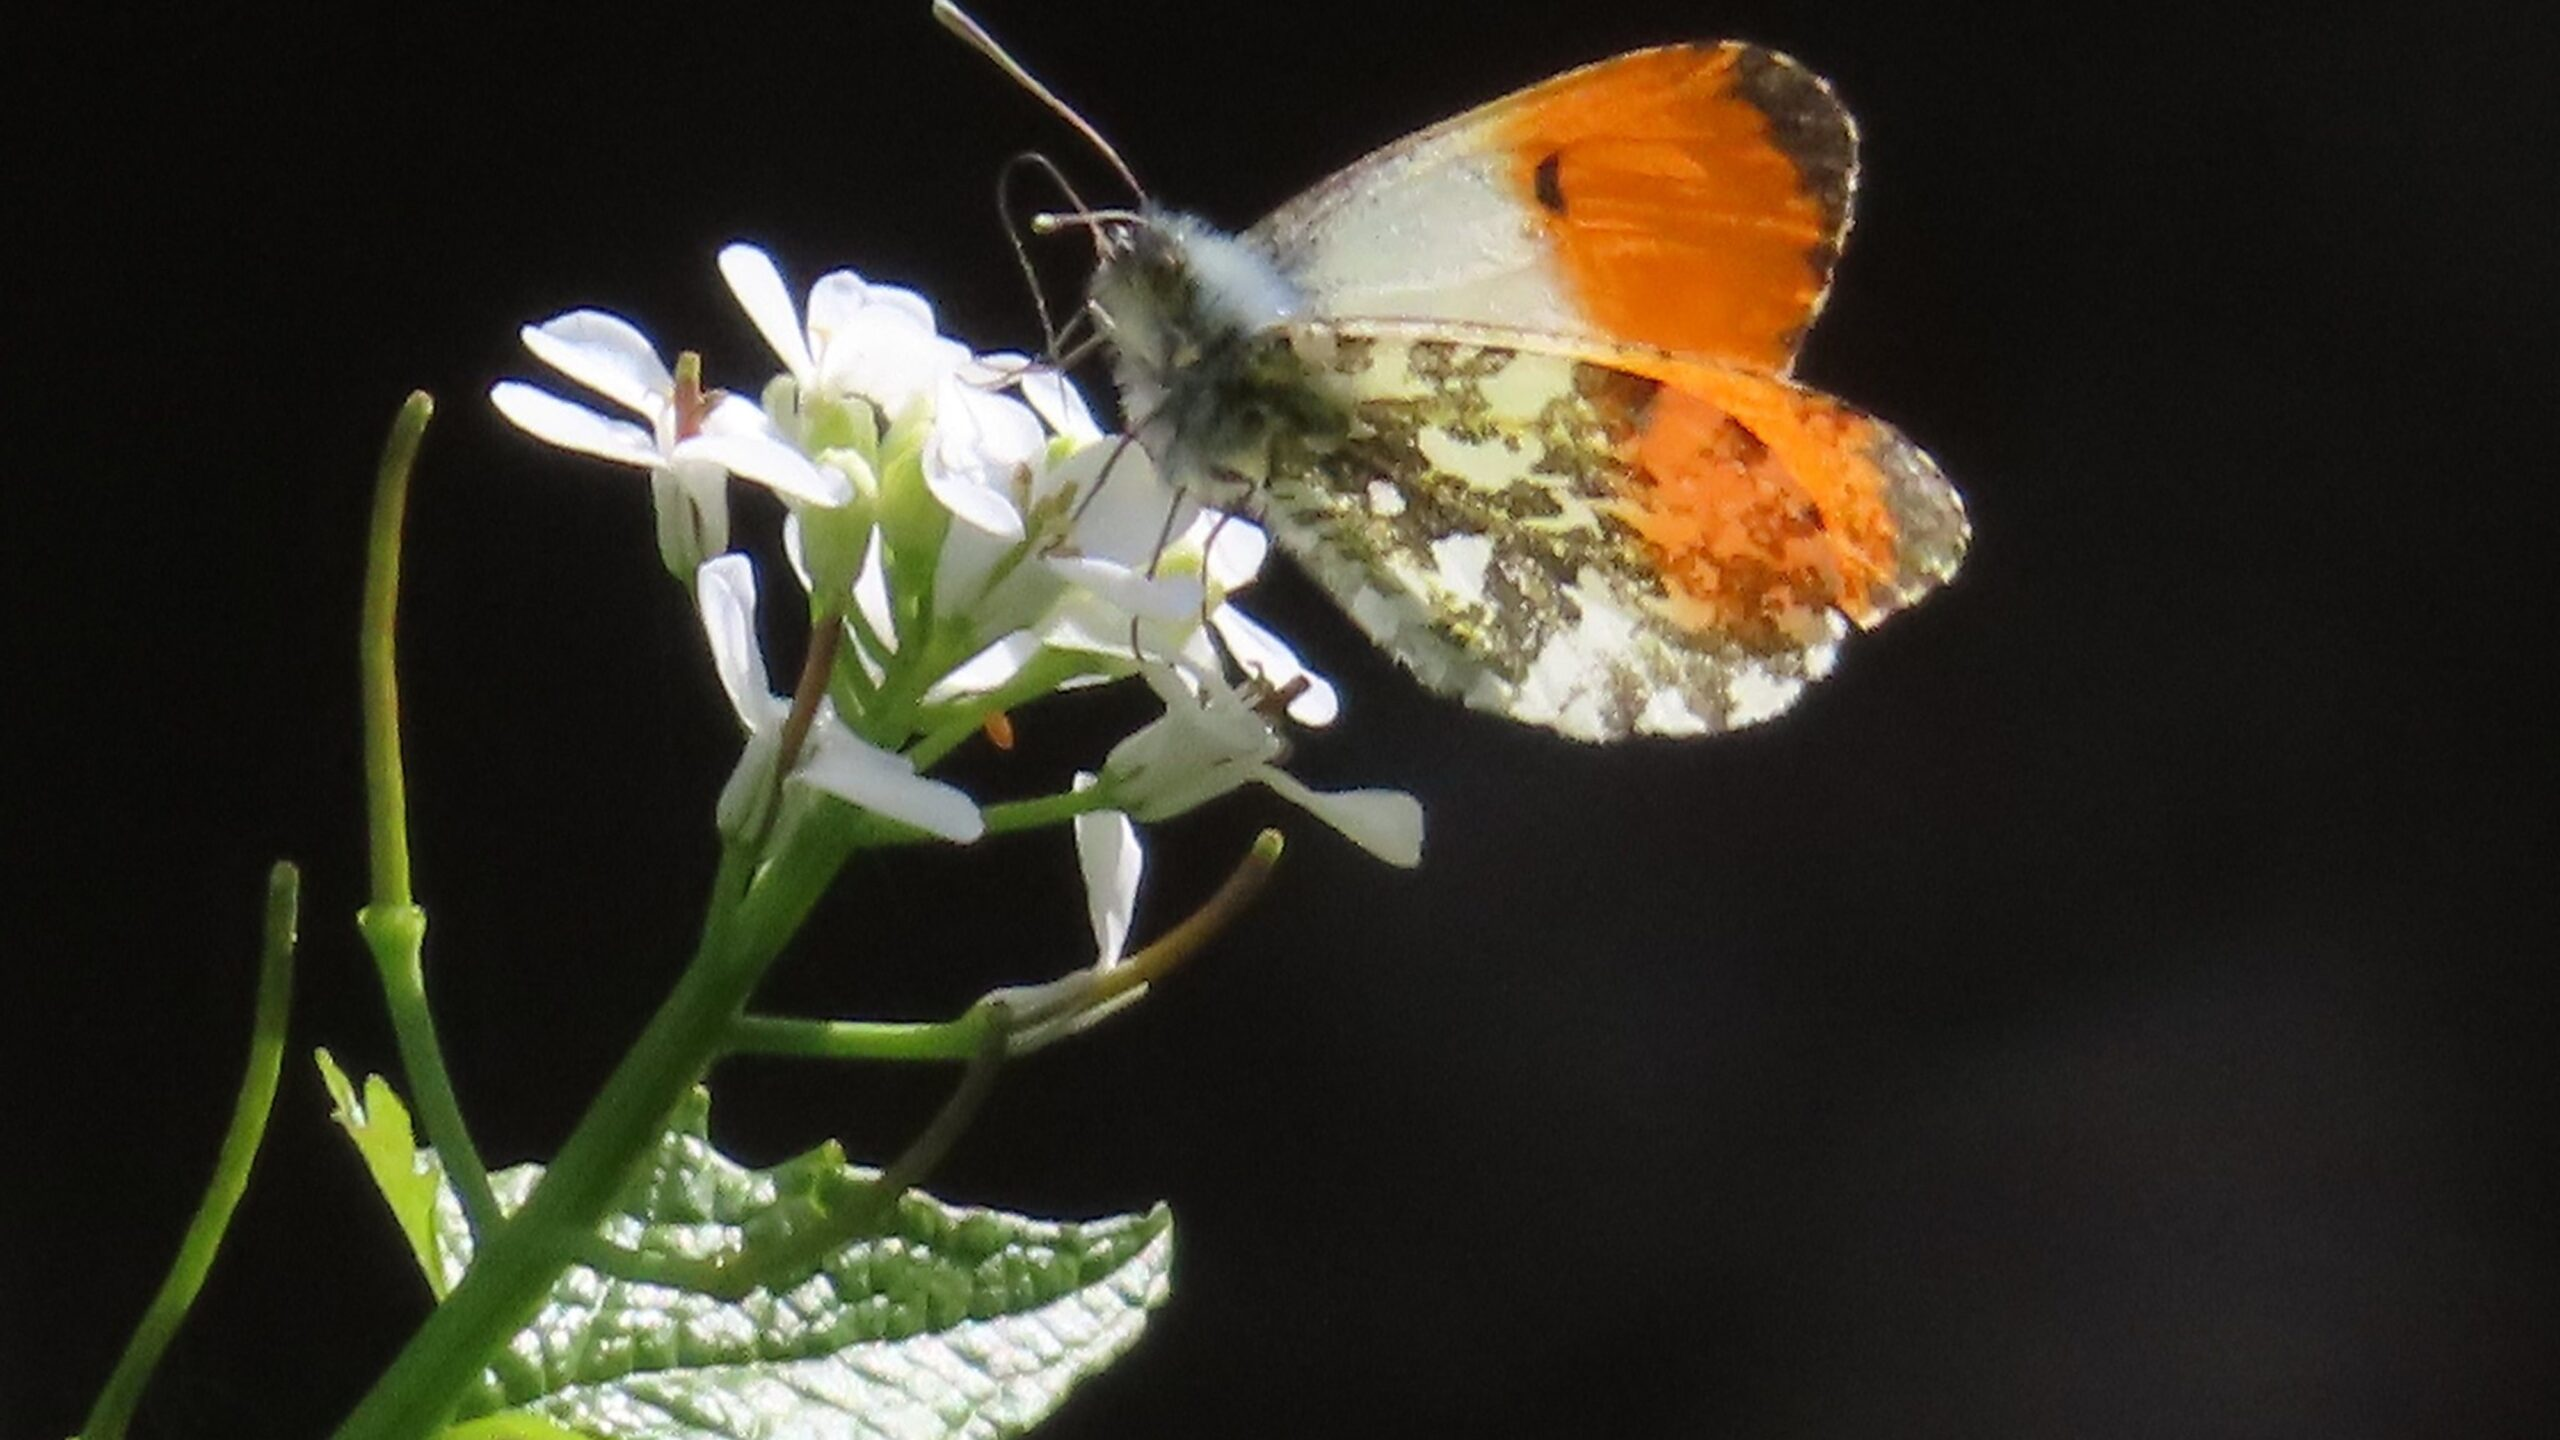 Other Pollinators | Busy Bees at work: and other pollinators in our landscape